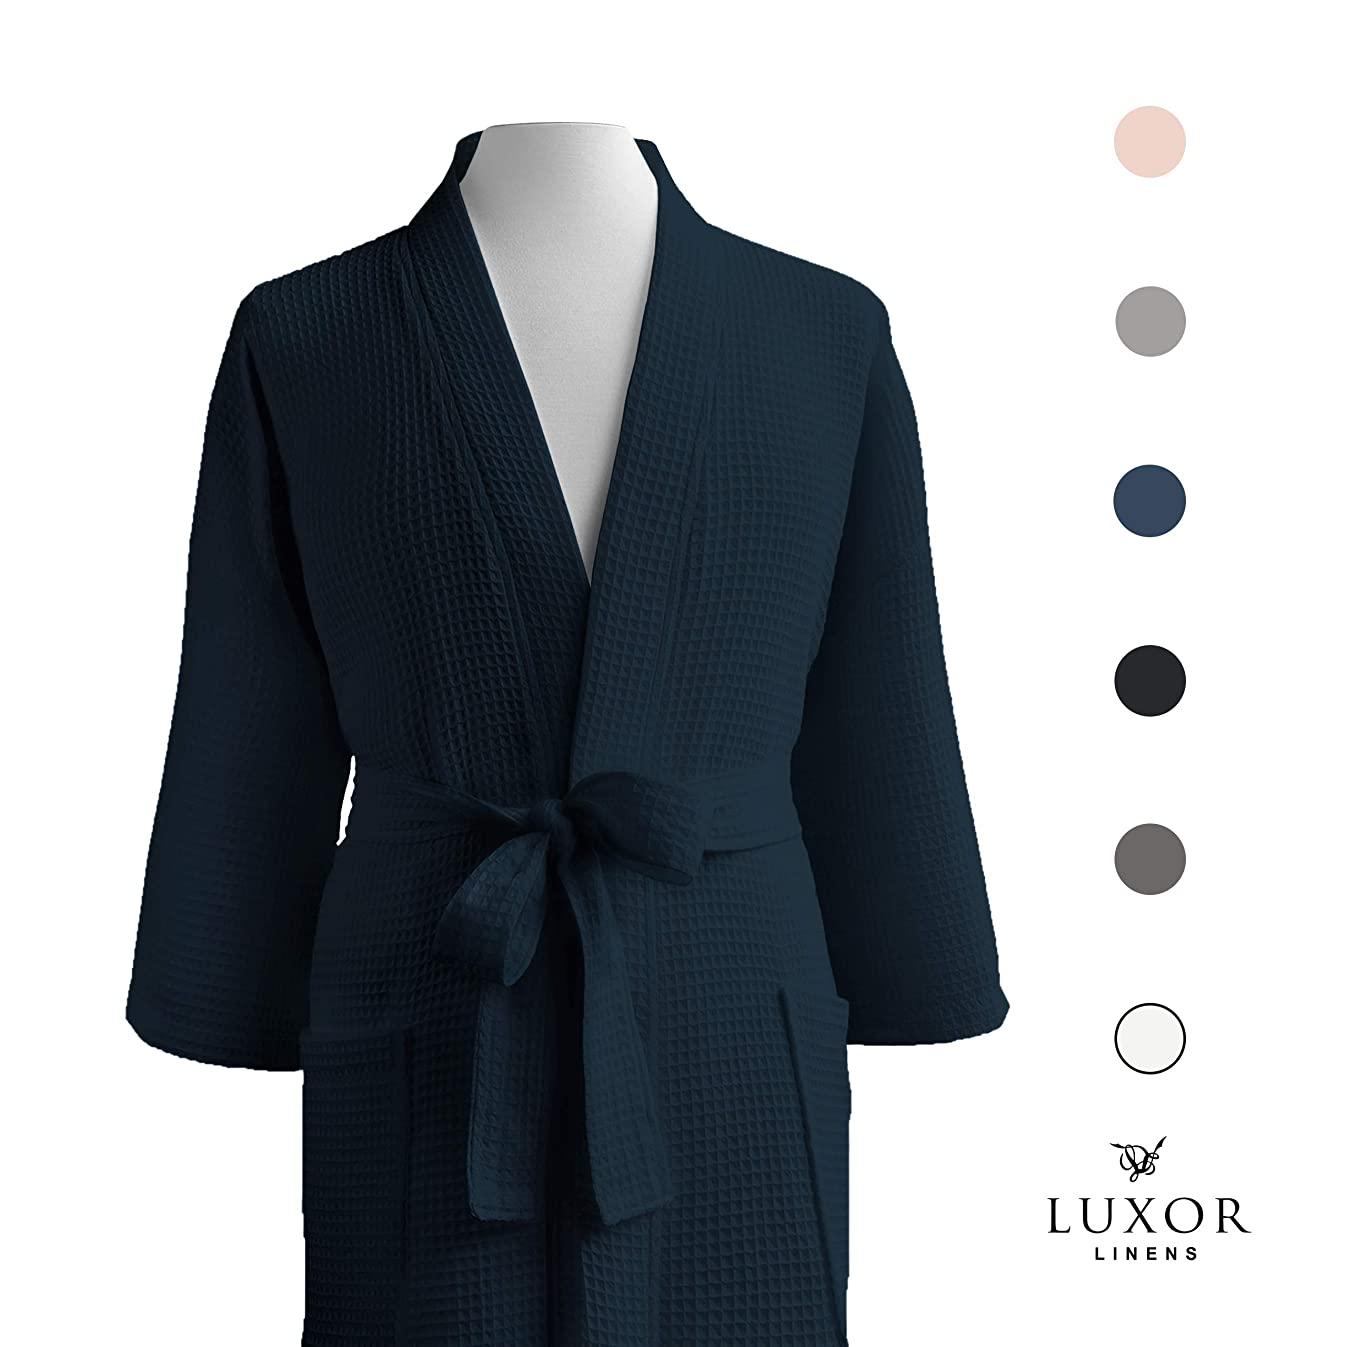 Luxor Linens LUXA House - Waffle Bathrobe - 100% Egyptian Cotton - Unisex/One Size Fits Most - Navy - One Size Fits Most